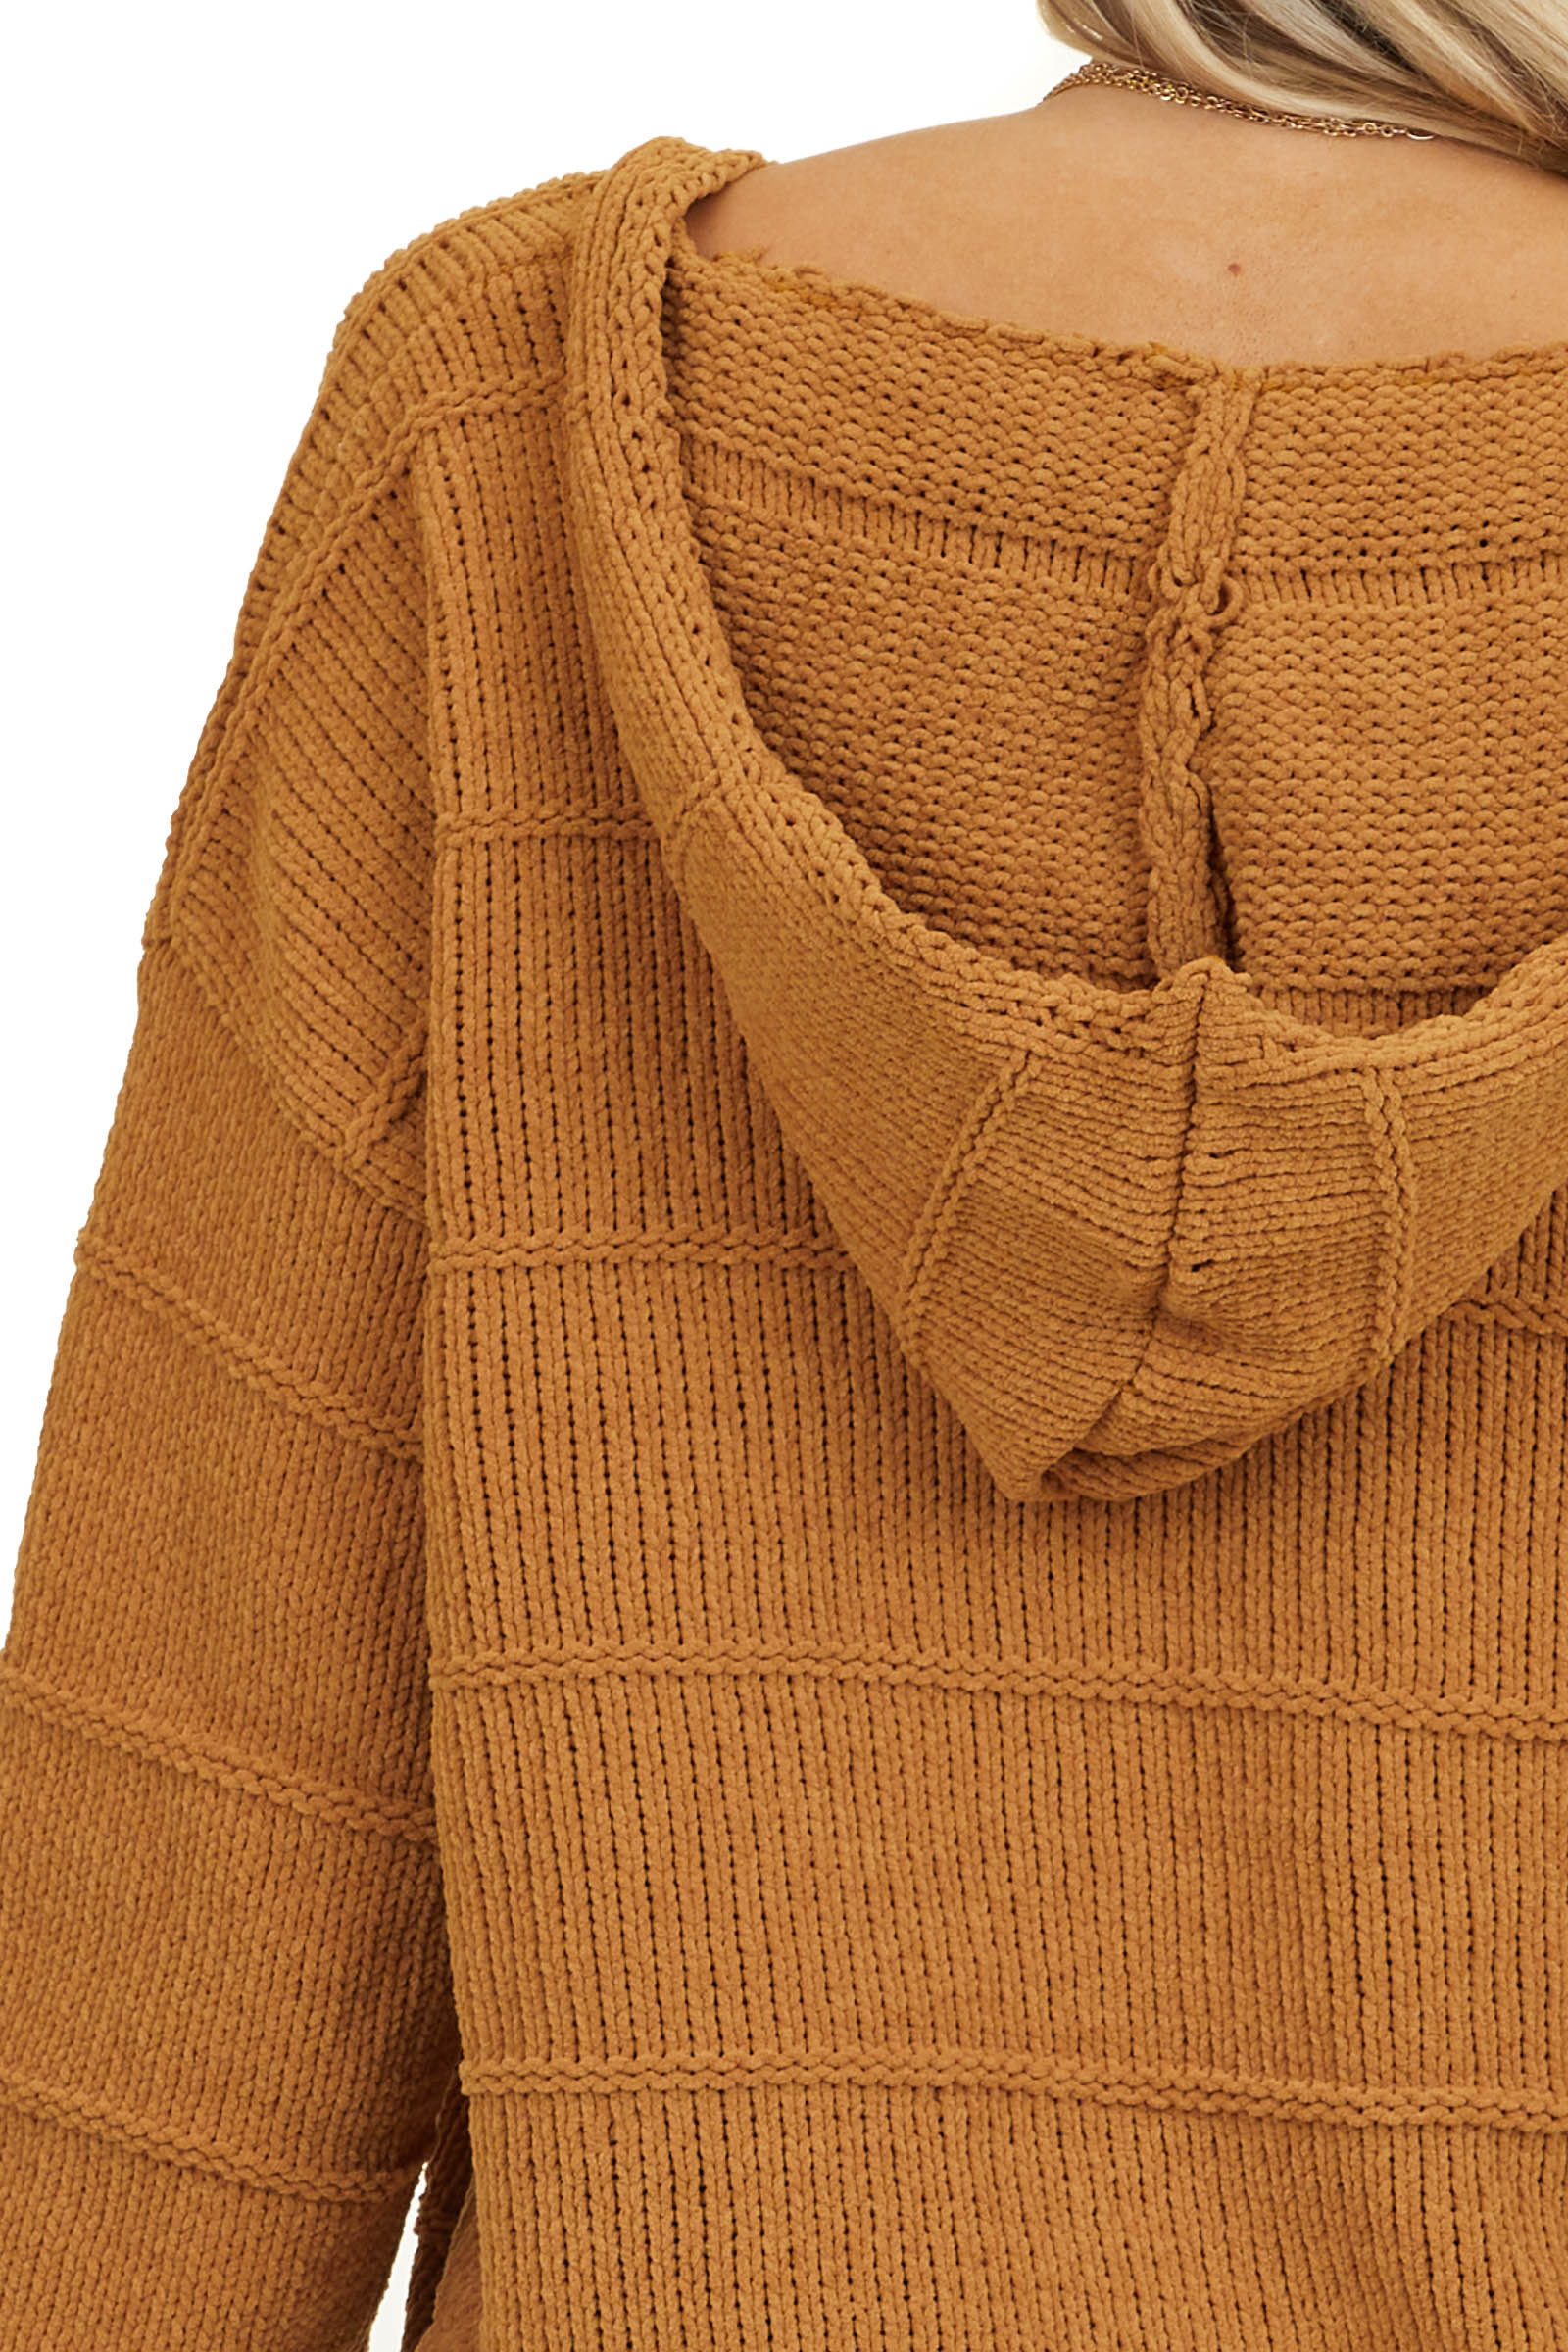 Camel Chenille Knit Sweater with Hood and Cable Knit Detail